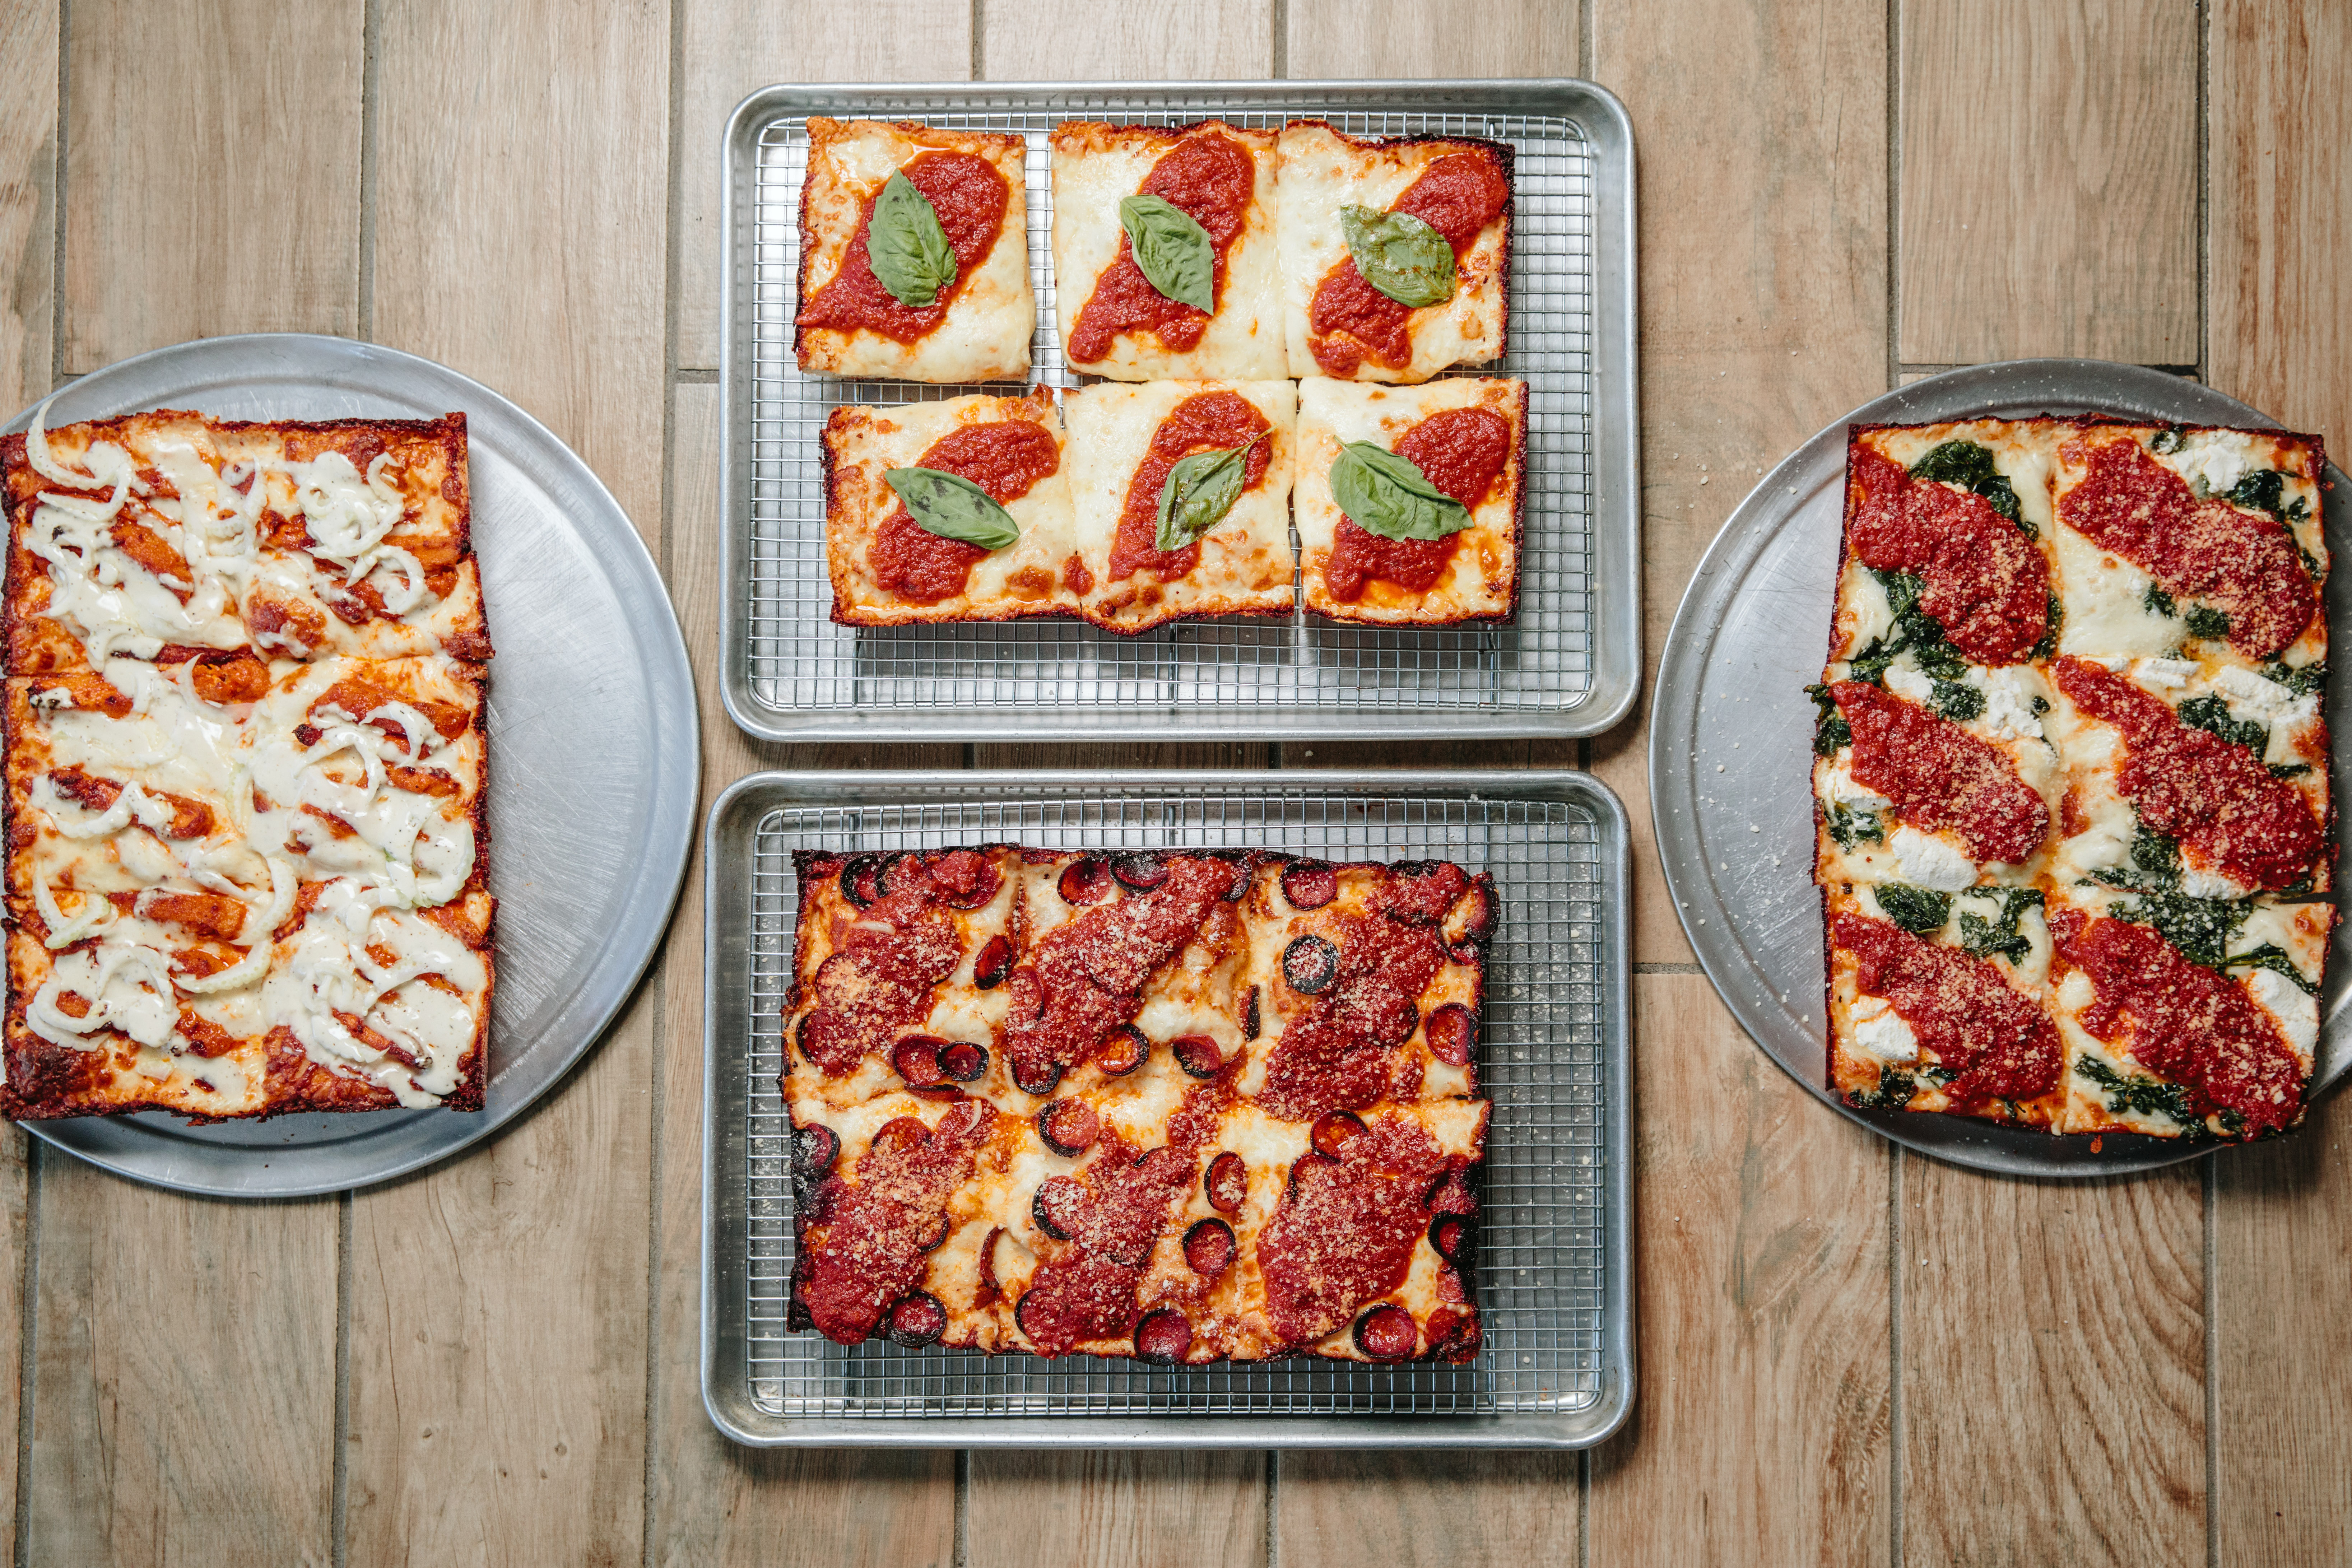 Overhead view of four rectangular Detroit-style pizzas on steel pans on a wooden table